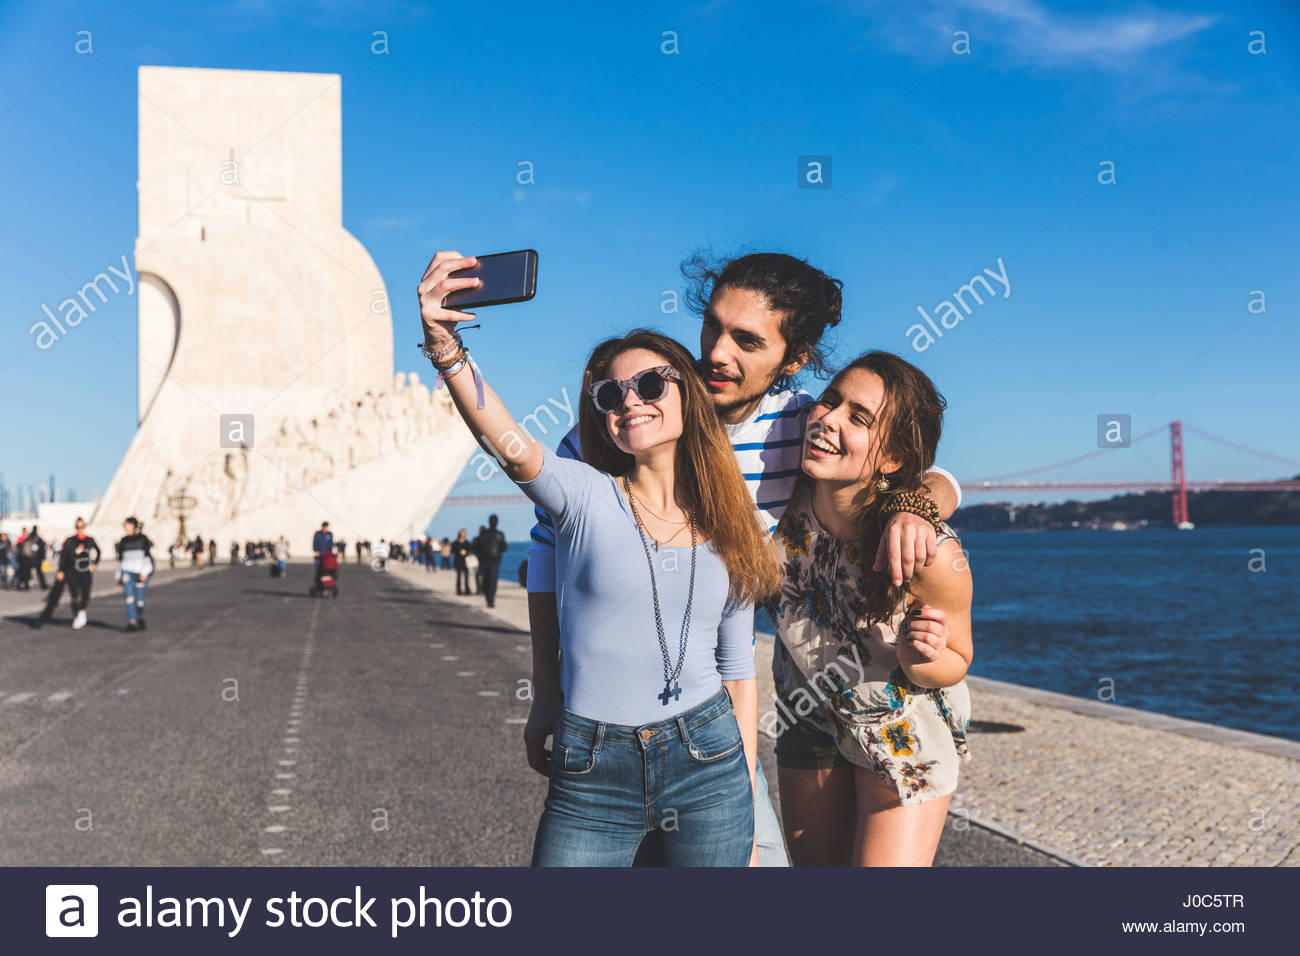 Three friends, outdoors, taking selfie with smartphone, Monument to the Discoveries in background, Lisbon, Portugal - Stock Image